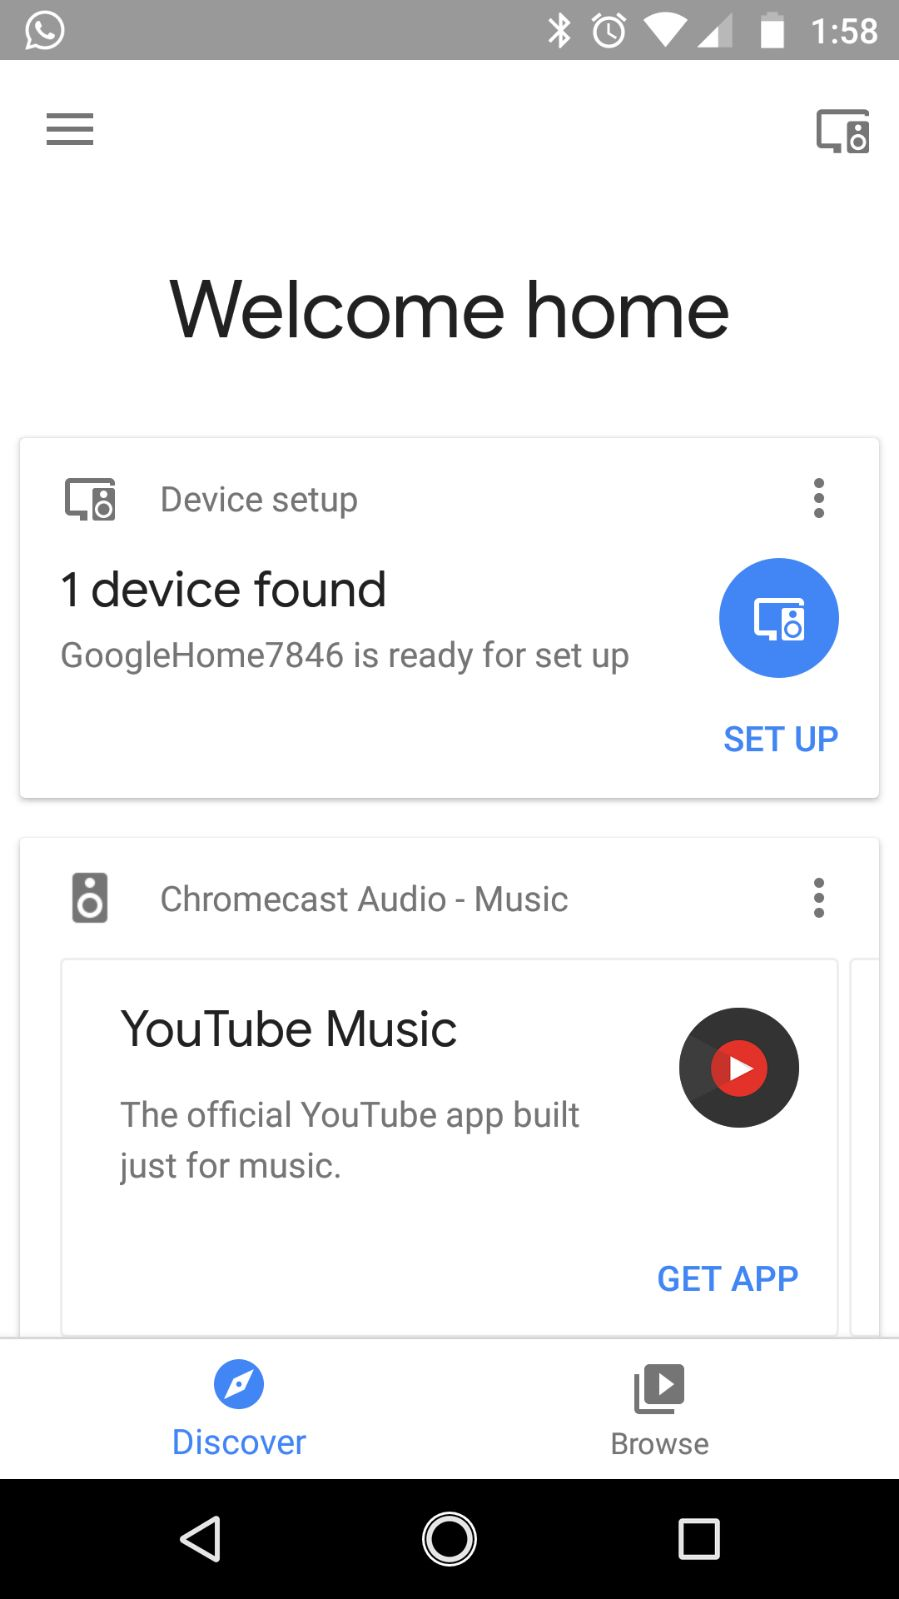 Setting up Google Home for the first time - Voice User